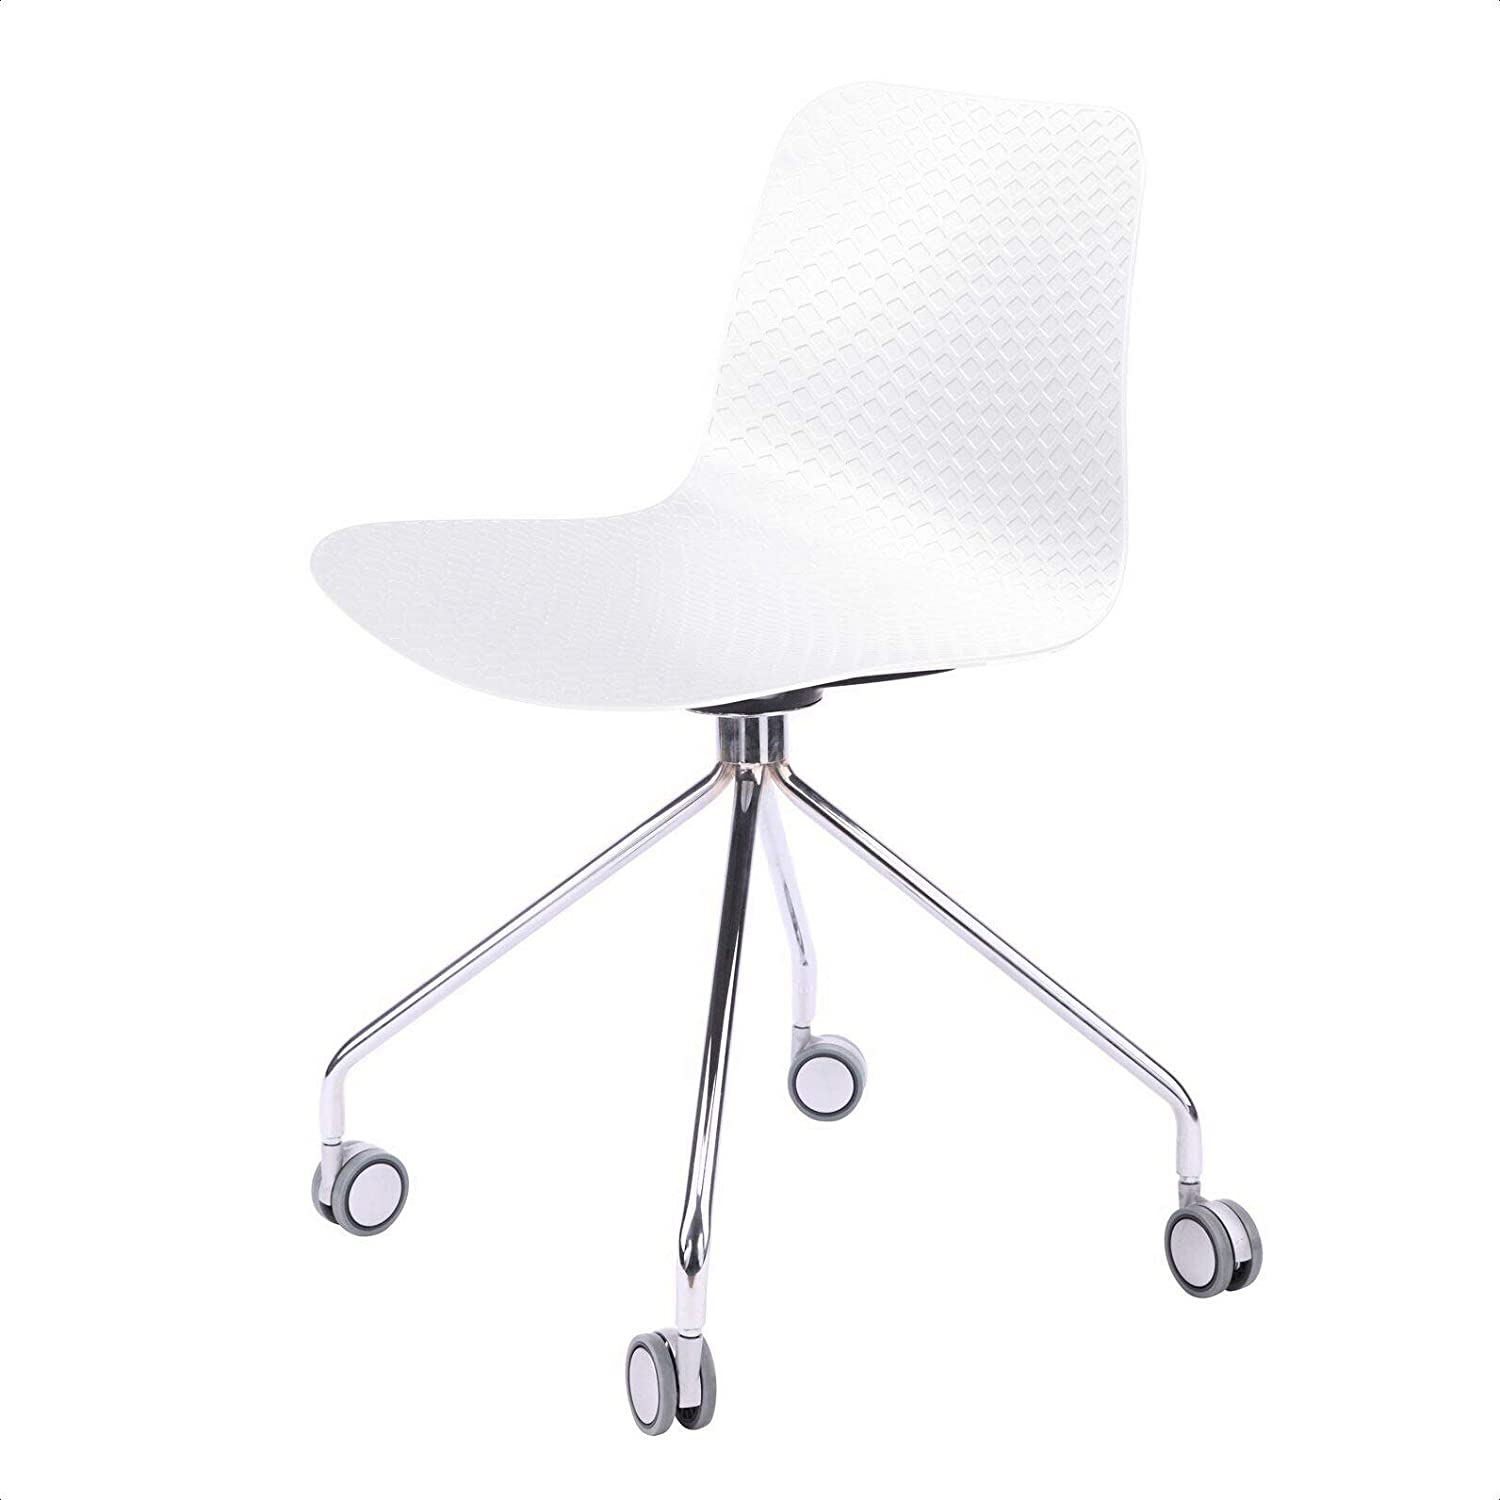 Drasner Task Chair Easy Moving Around High quality new Selling rankings H or Seat Home Office at